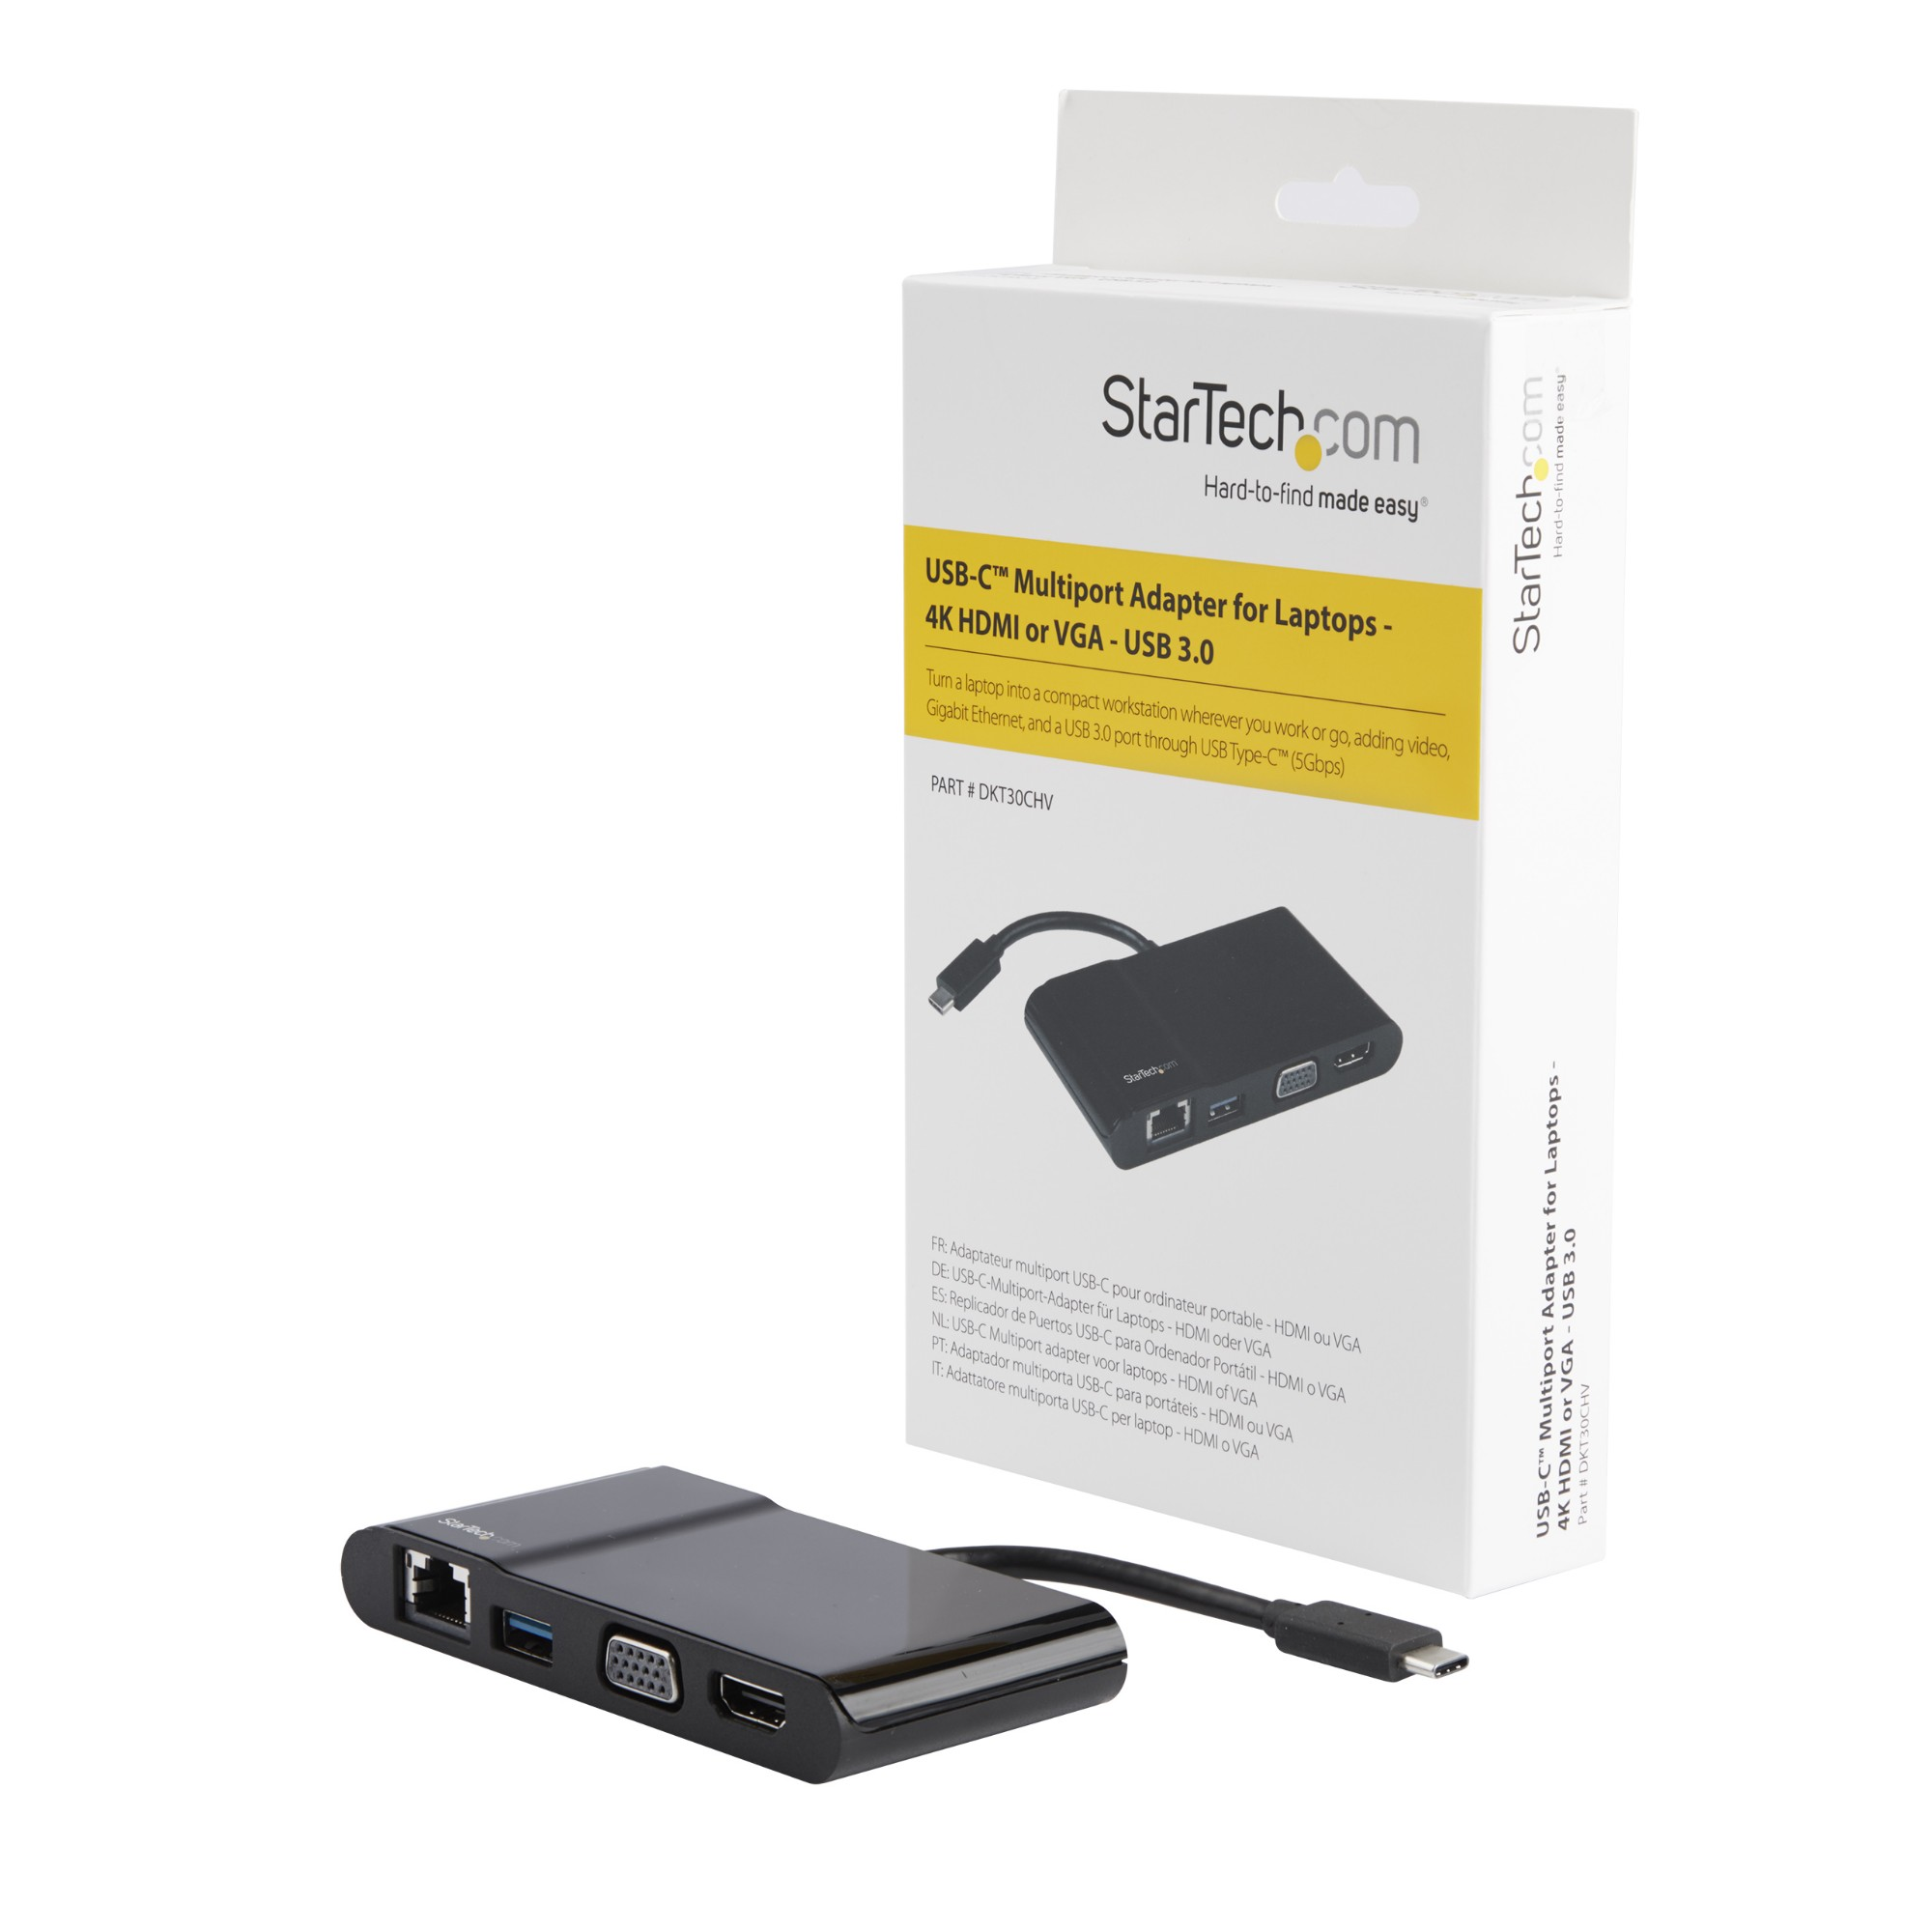 StarTech com USB-C Multiport Adapter for Laptops - 4K HDMI or VGA - GbE -  USB 3 0